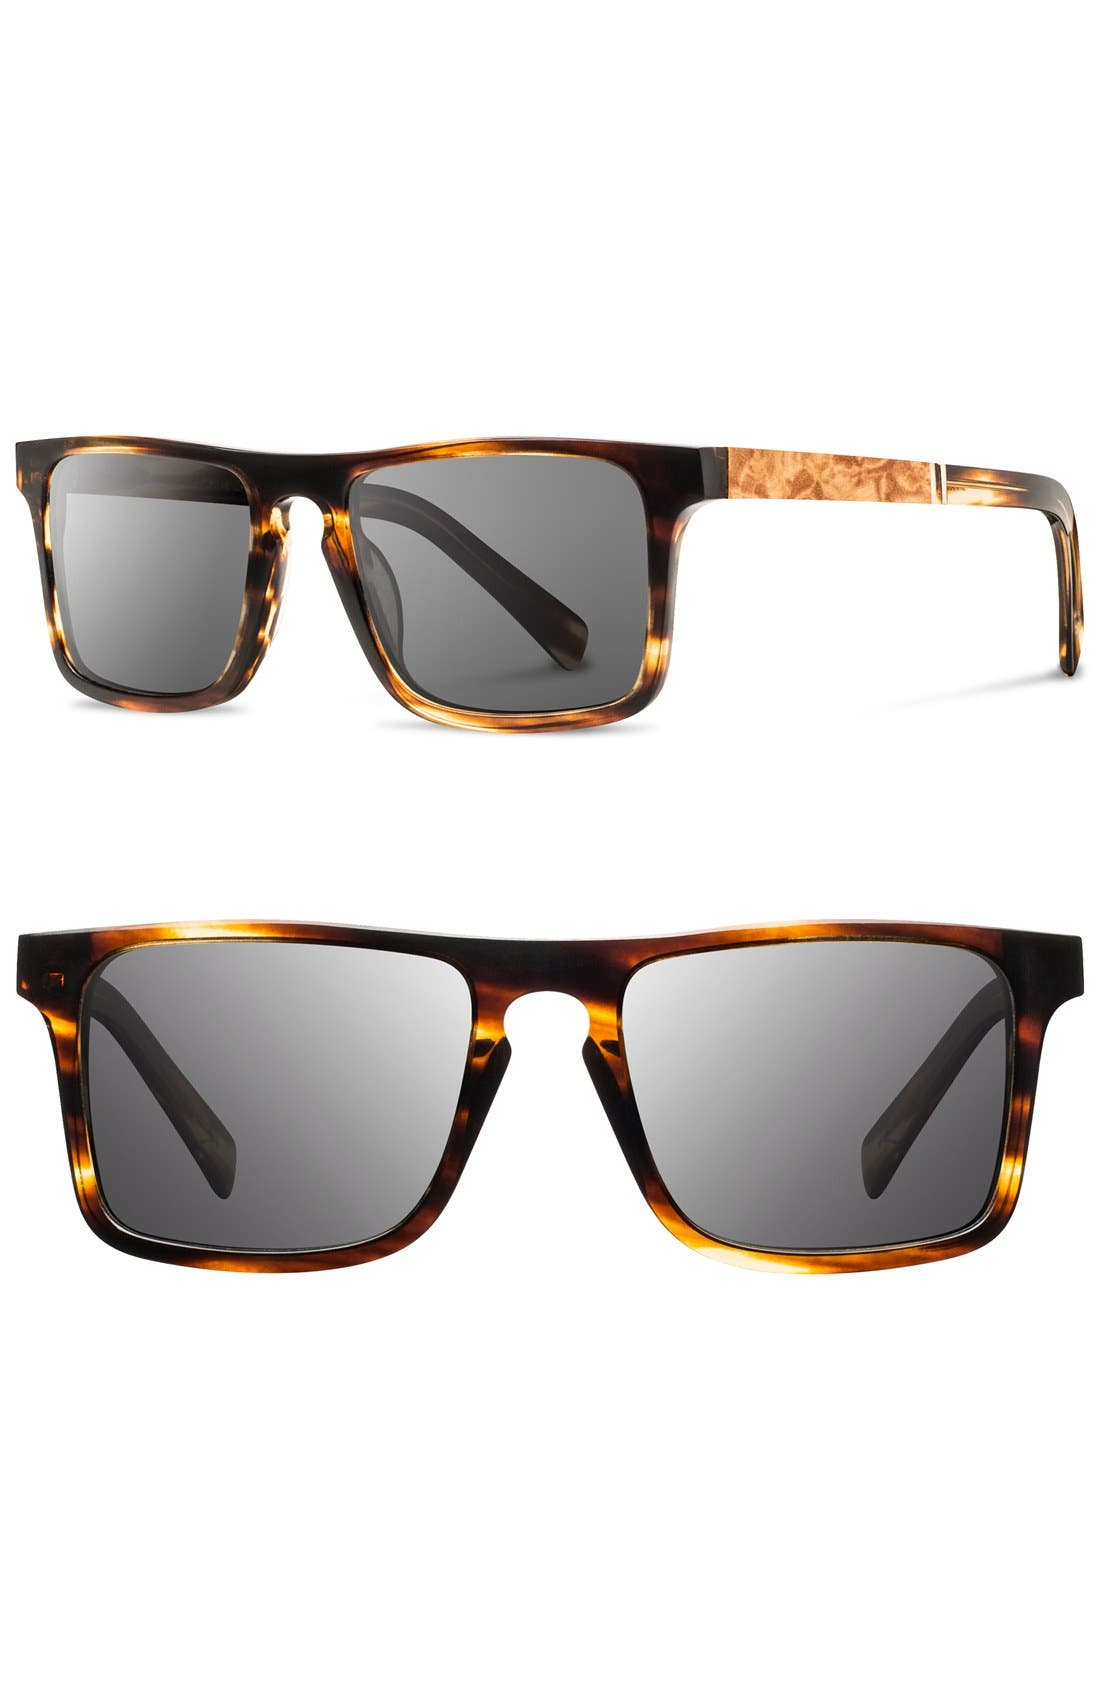 Main Image - Shwood 'Govy' 52mm Wood Sunglasses